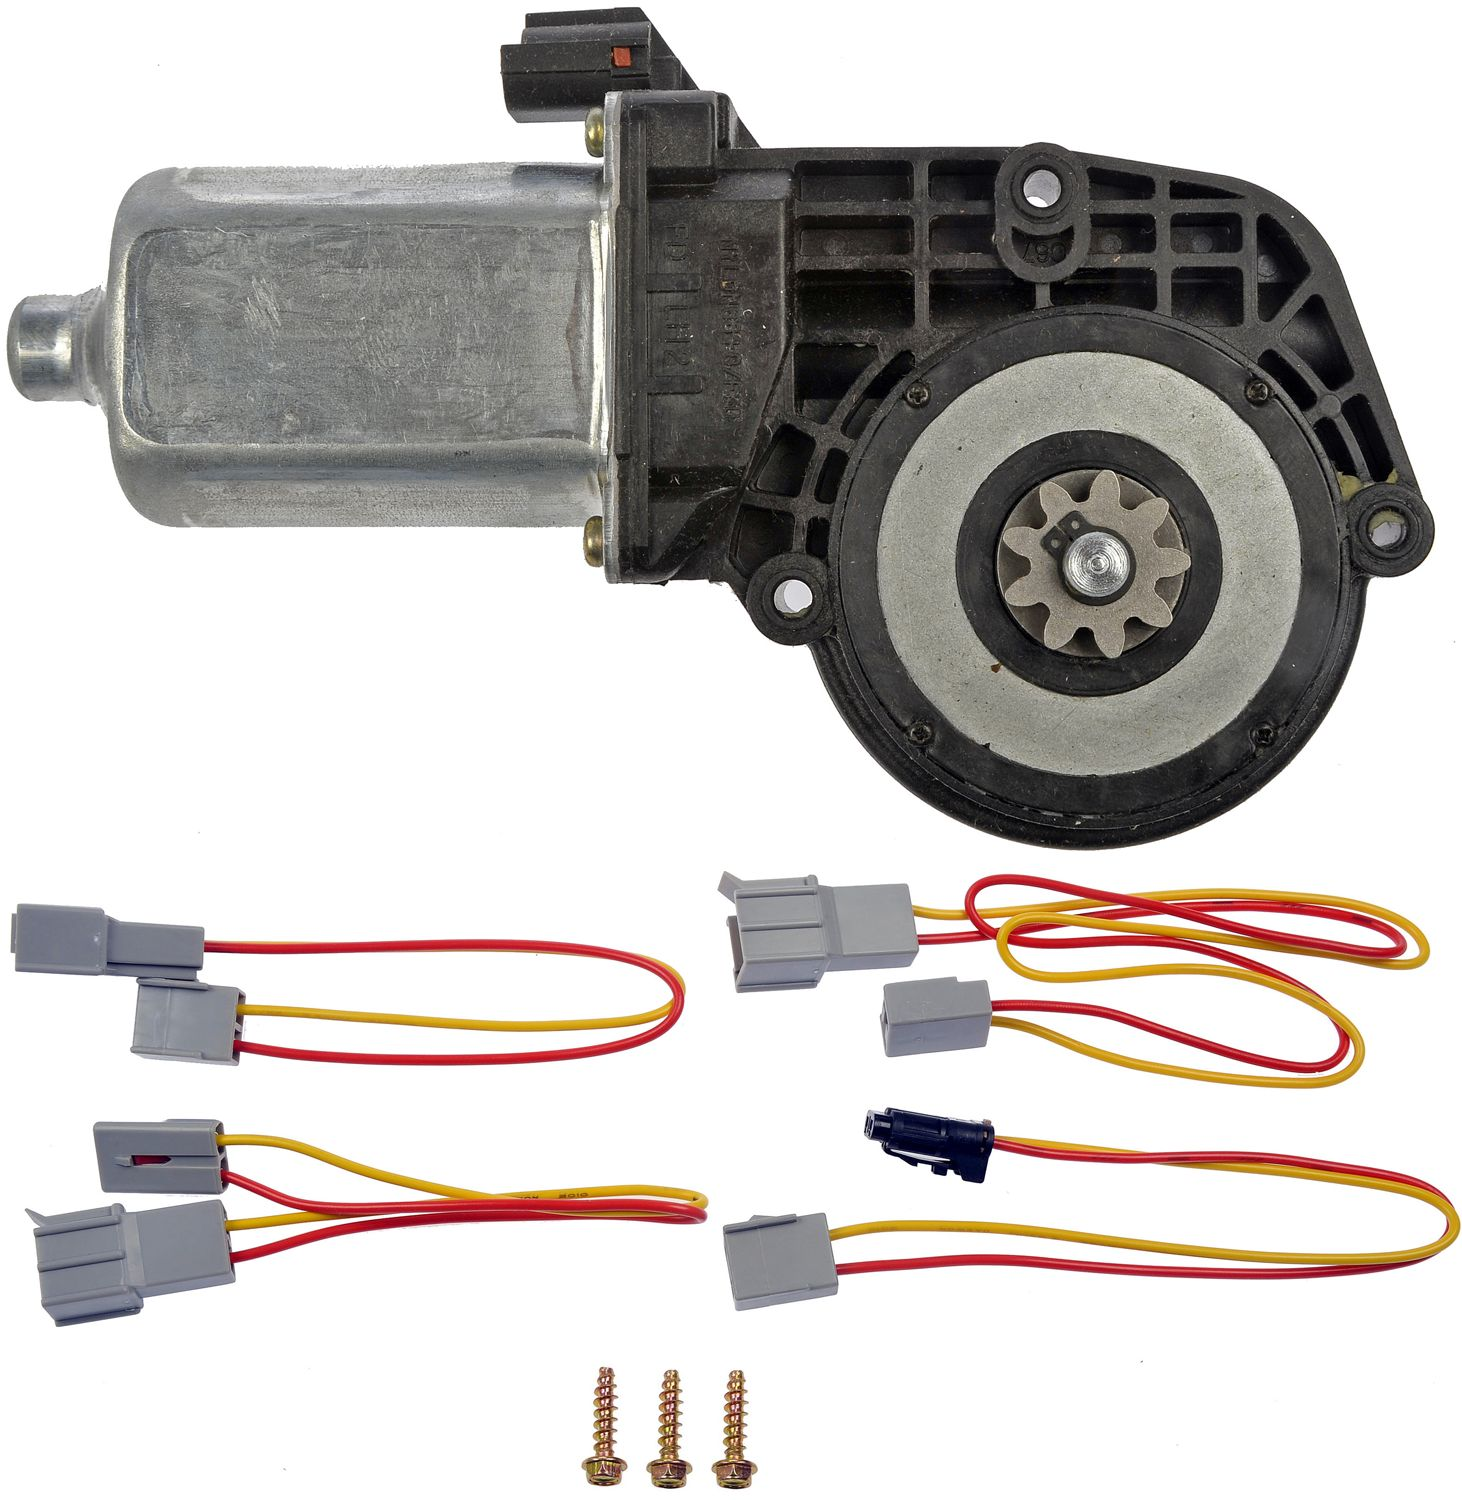 Dorman Power Window Motor, #DOR742-251